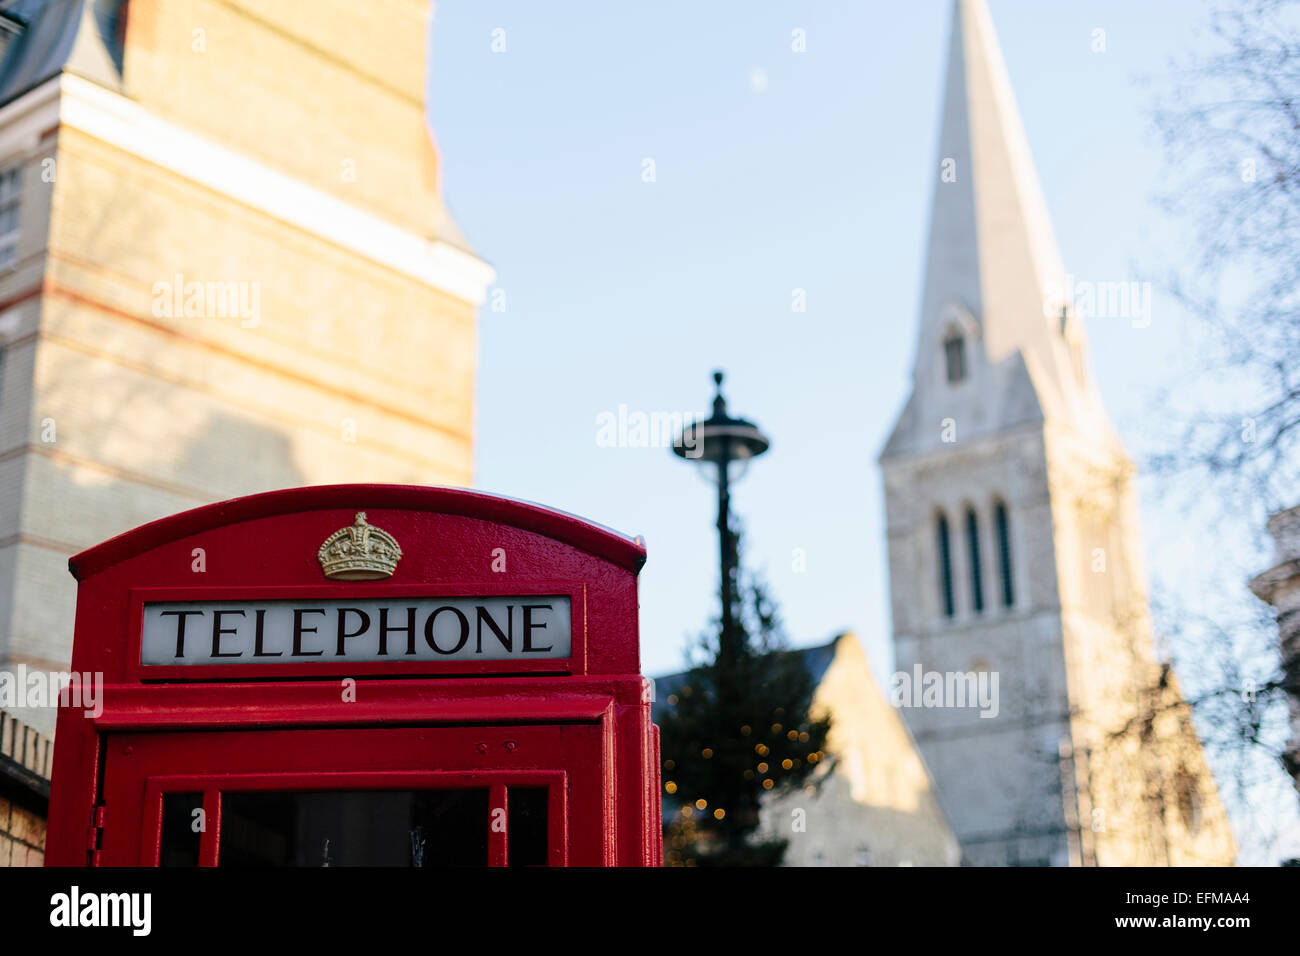 London Red Telephone Box with Church Steeple in background - Stock Image